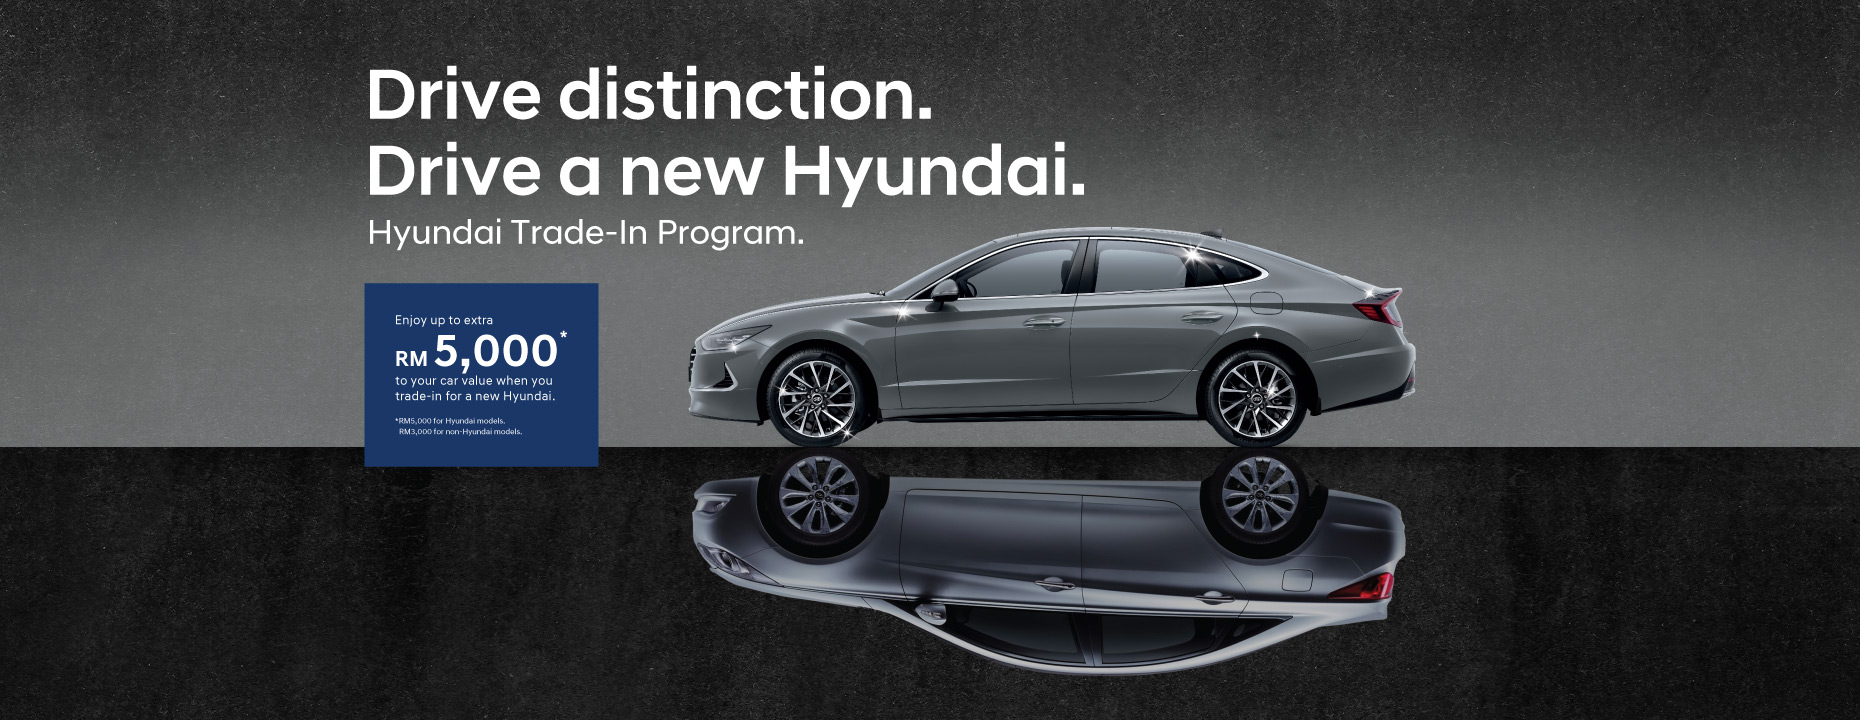 Drive distinction. Drive a new Hyundai. Hyundai Trade-in Program - Enjoy up to extra RM 5,000* to your car value when you trade-in for a new Hyundai | Exclusive promotion for all car owners. Trade in your car now at an attractive overtrade rebate, even more so if you trade in your current Hyundai and step up for a brand new Hyundai now. This is an opportunity not to be missed. Hurry! Grab the deals before 31 December 2020. | For more information, contact customer careline at 1300-13-2000. Terms apply.